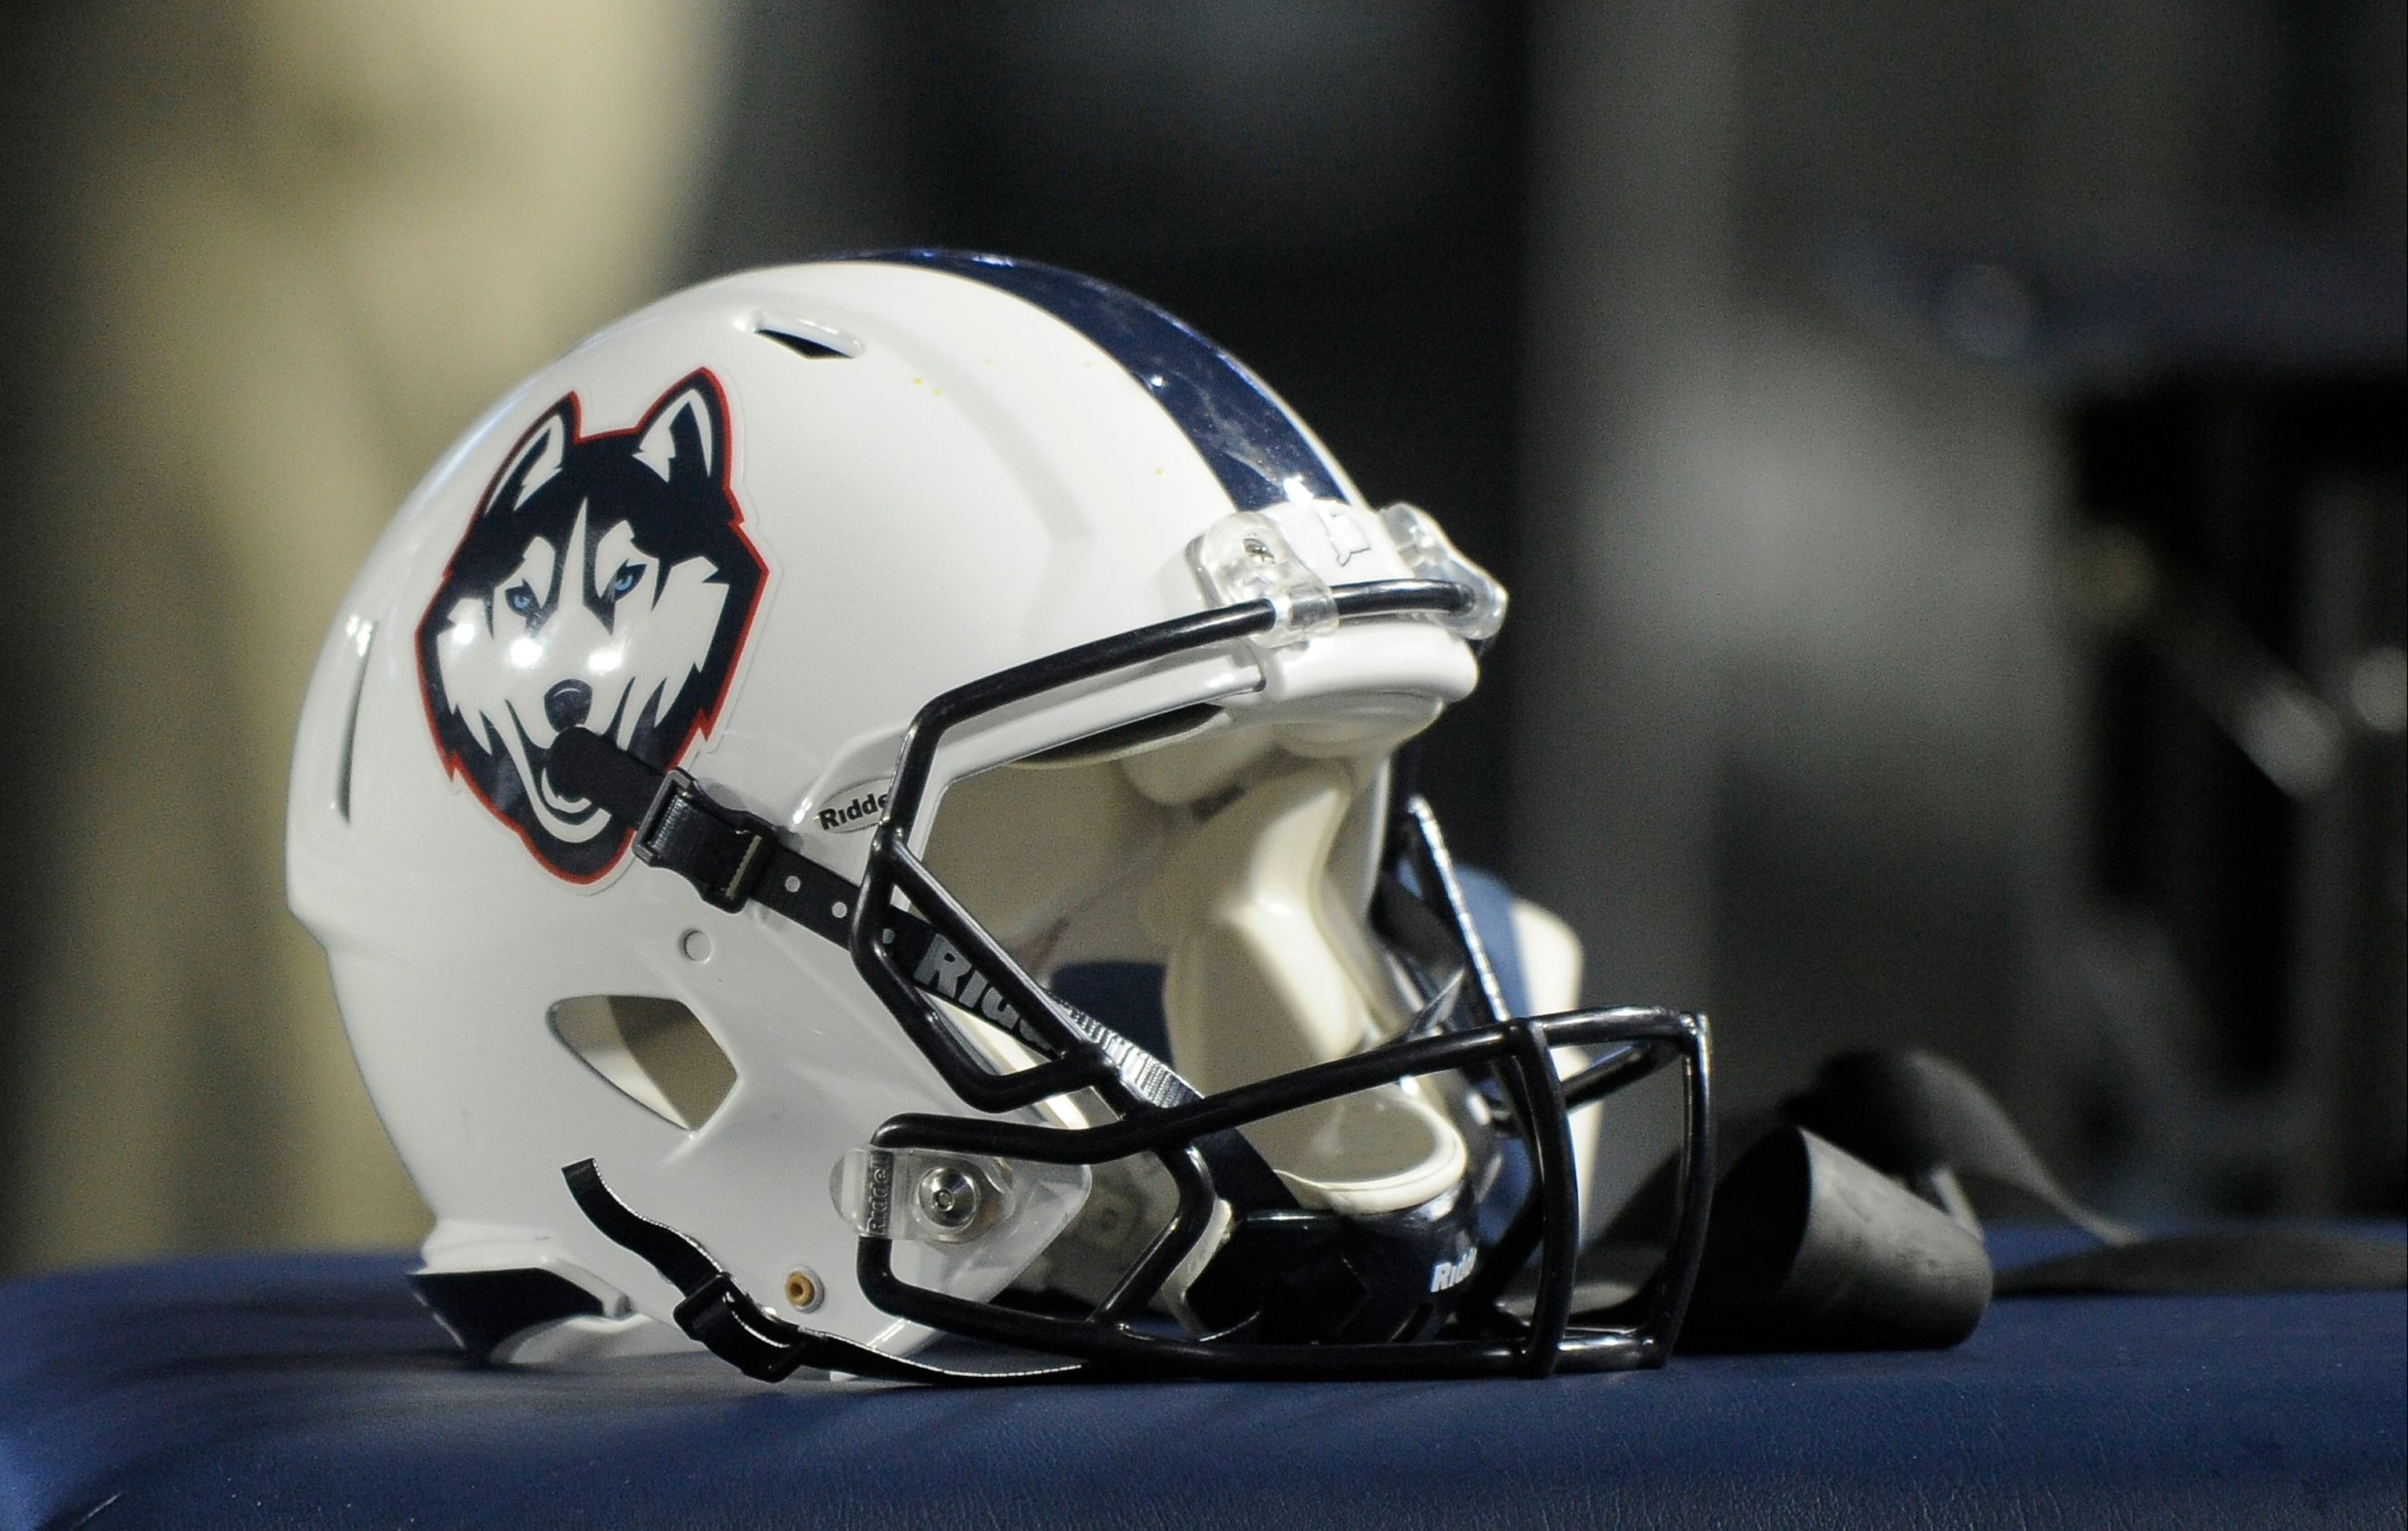 UConn becomes first school in college football's top division to cancel 2020 season